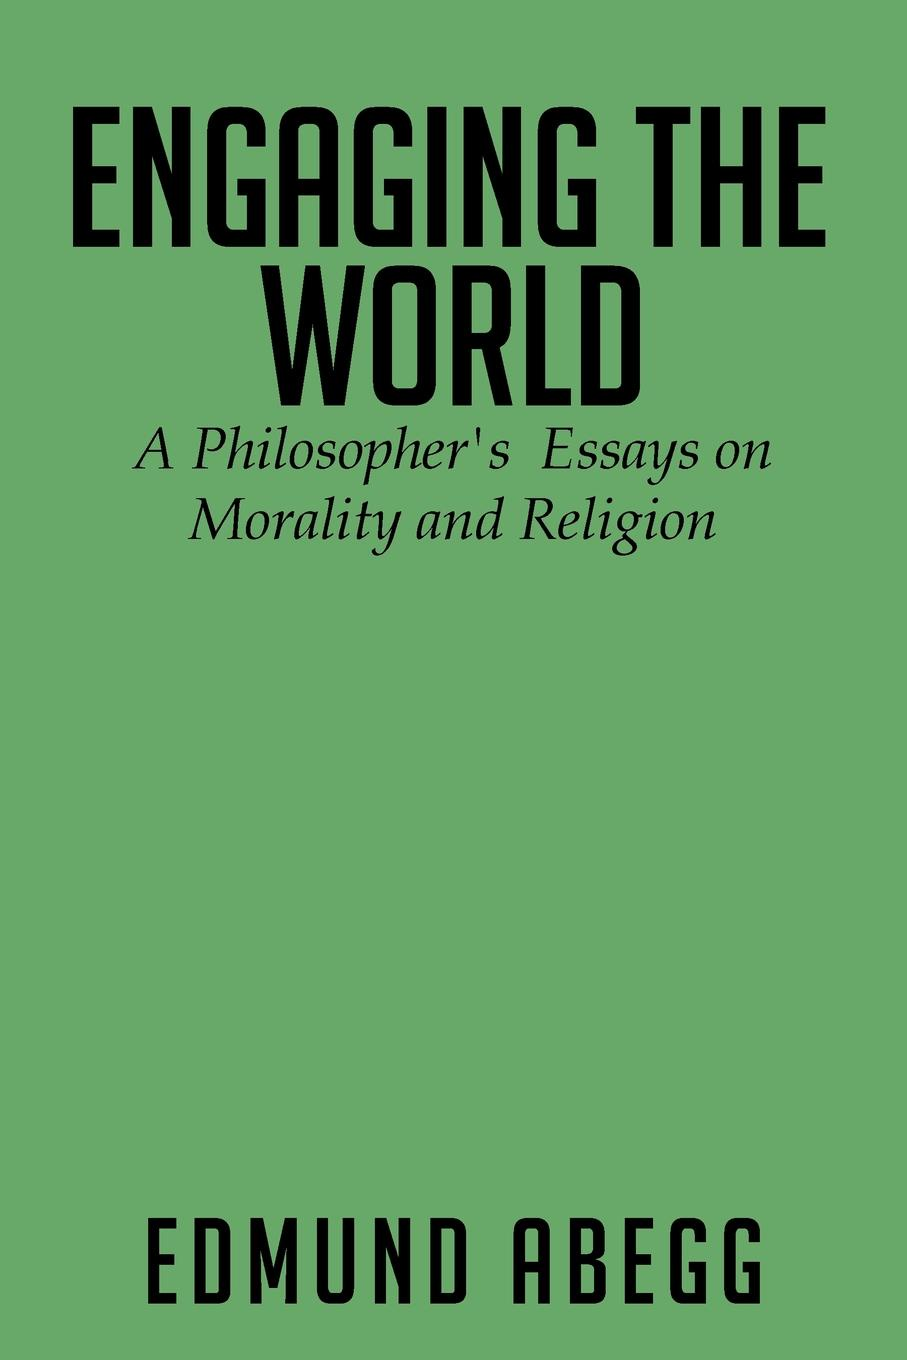 Edmund Abegg Engaging the World. A Philosopher's Essays on Morality and Religion